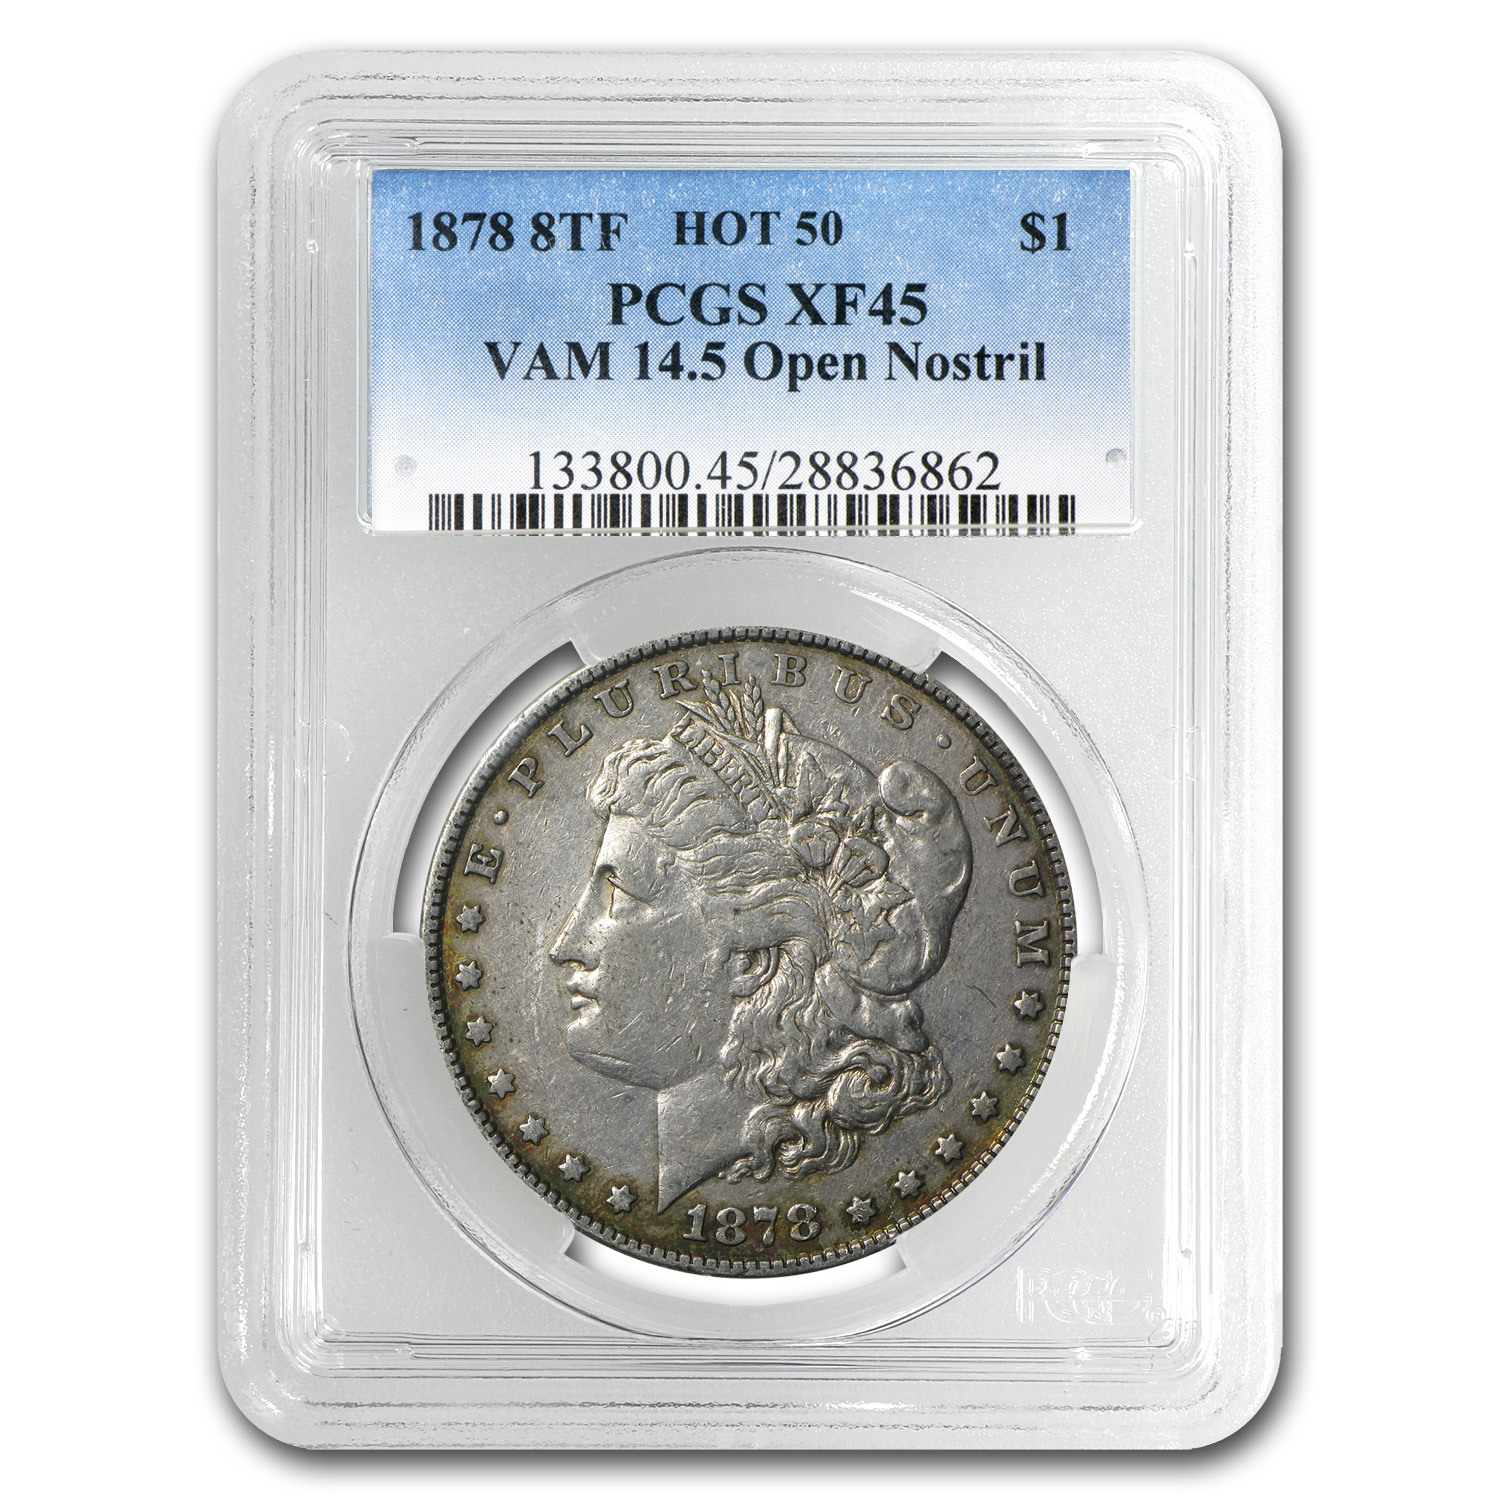 1878 Morgan Dollar 8 TF XF-45 PCGS VAM-14.5 Open Nostril Hot-50